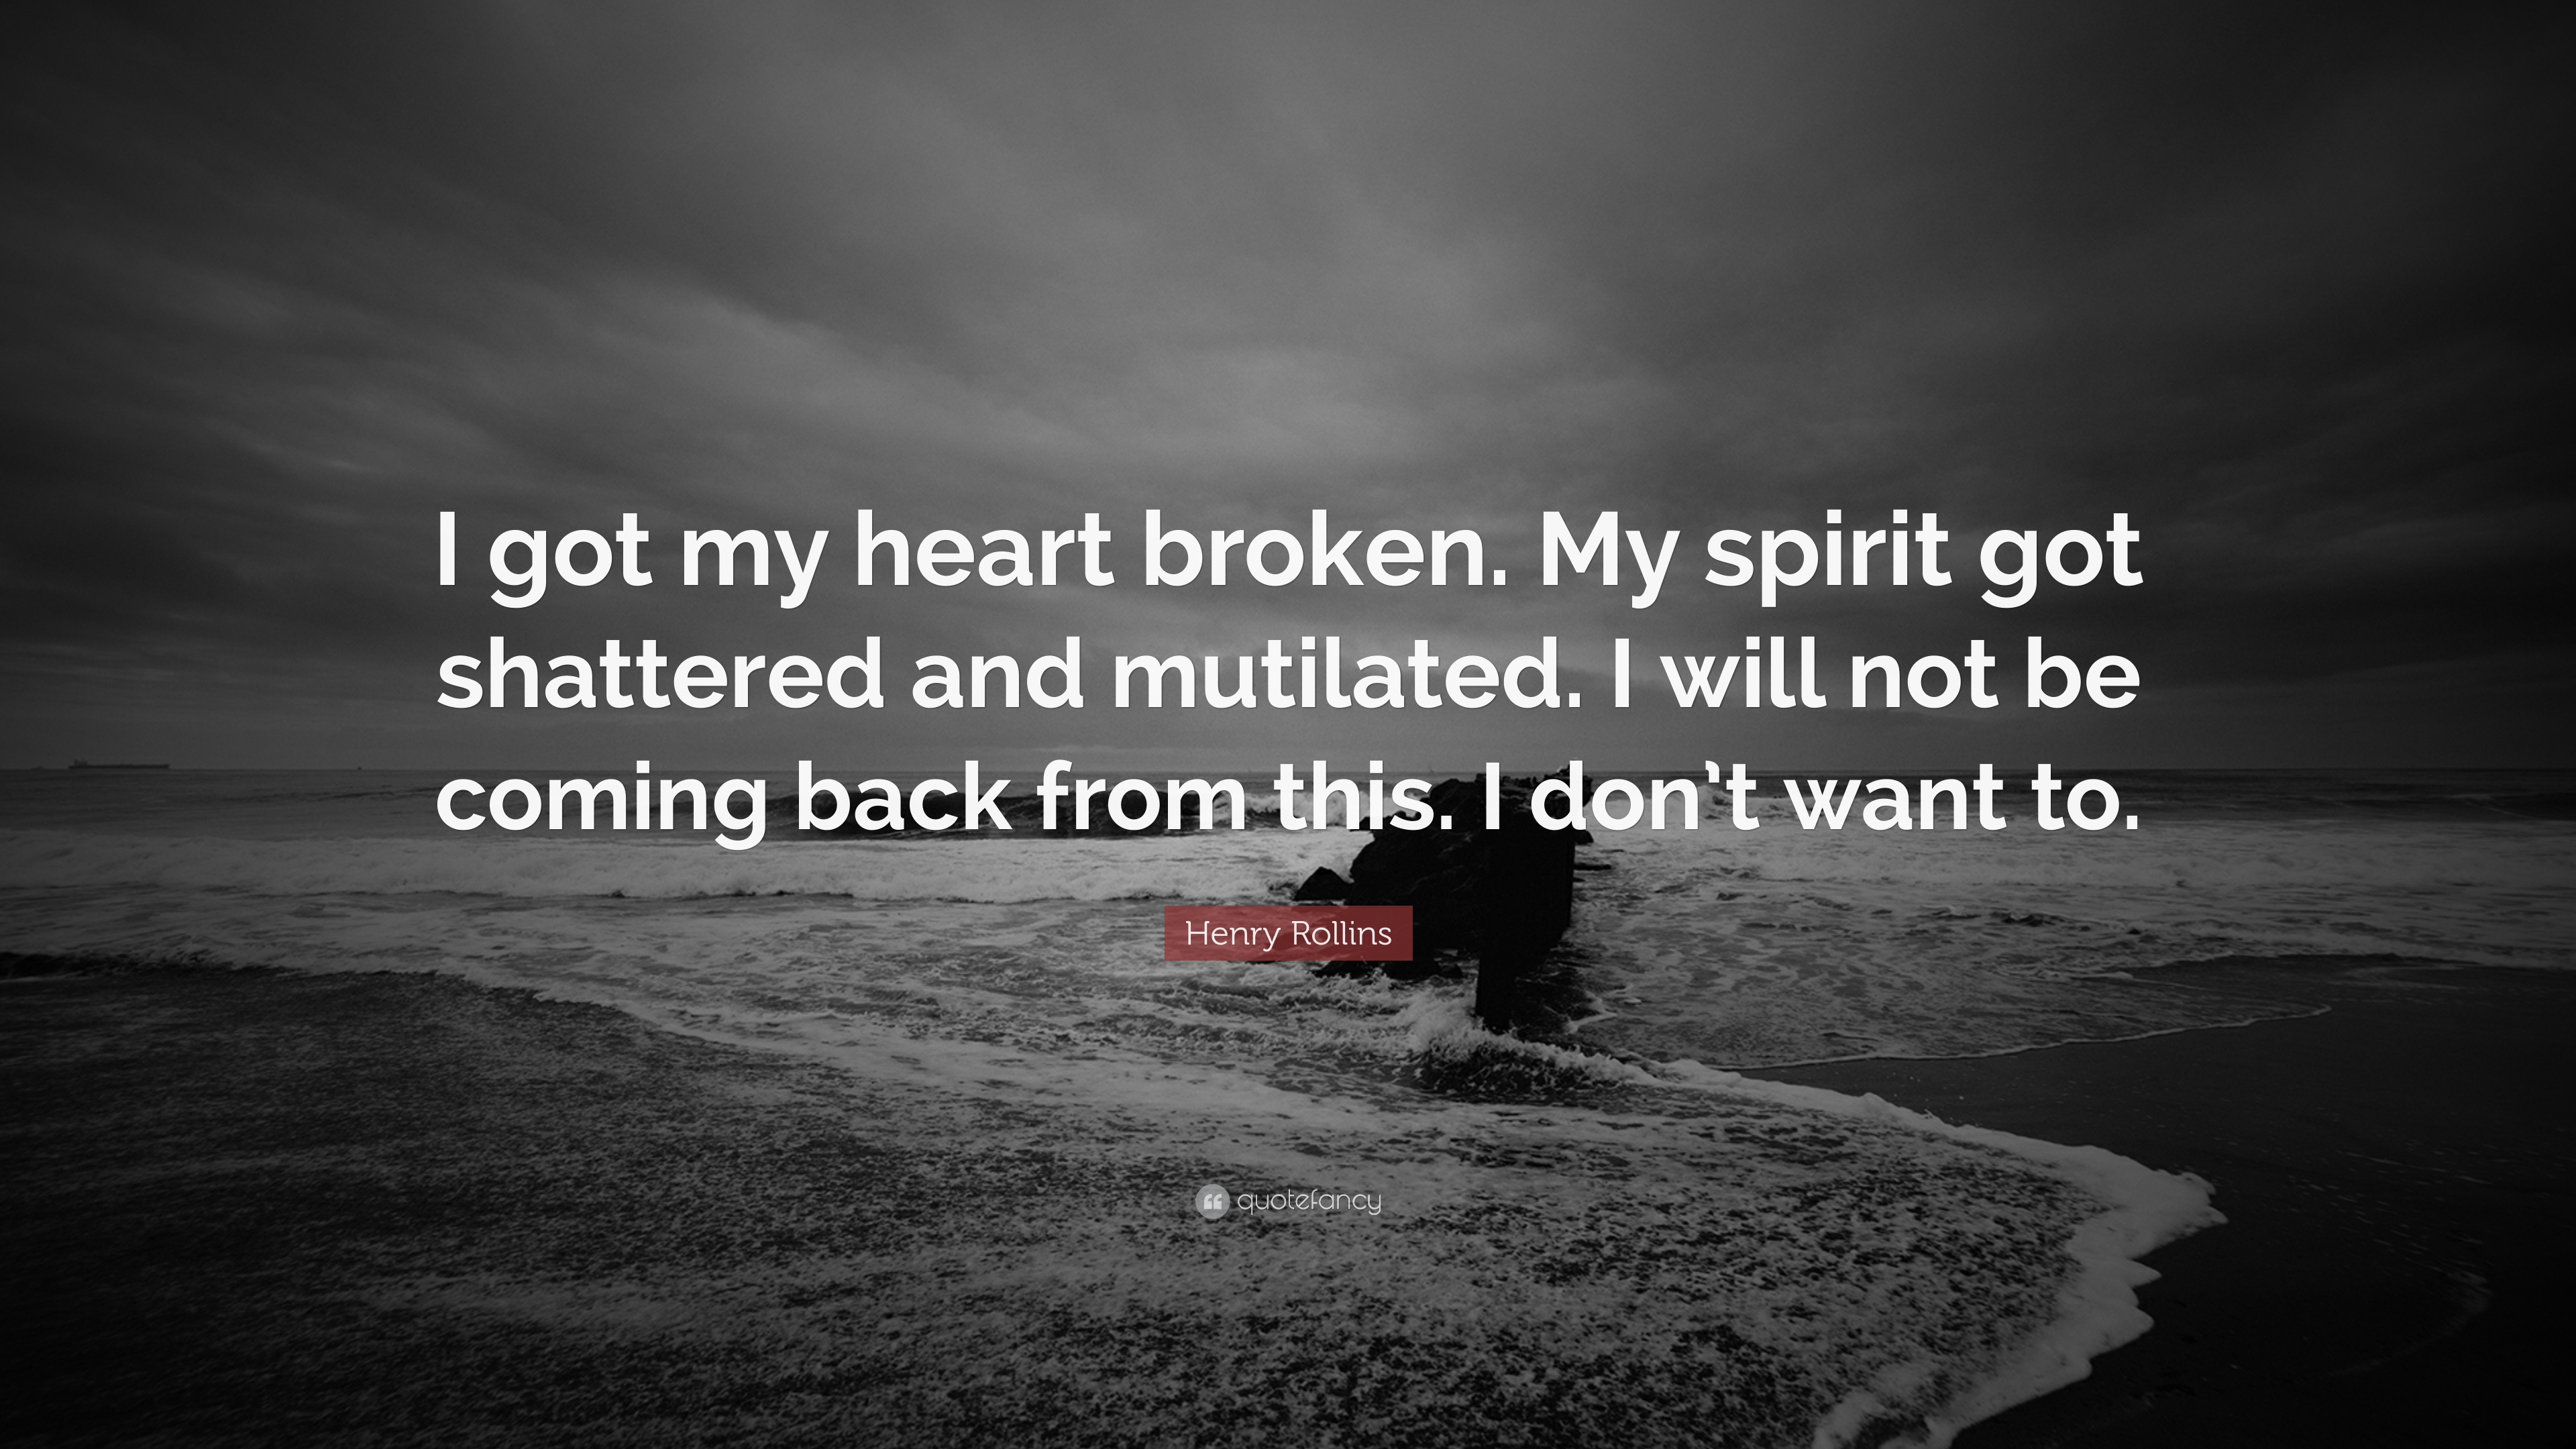 Henry Rollins Quote I Got My Heart Broken Spirit Shattered And